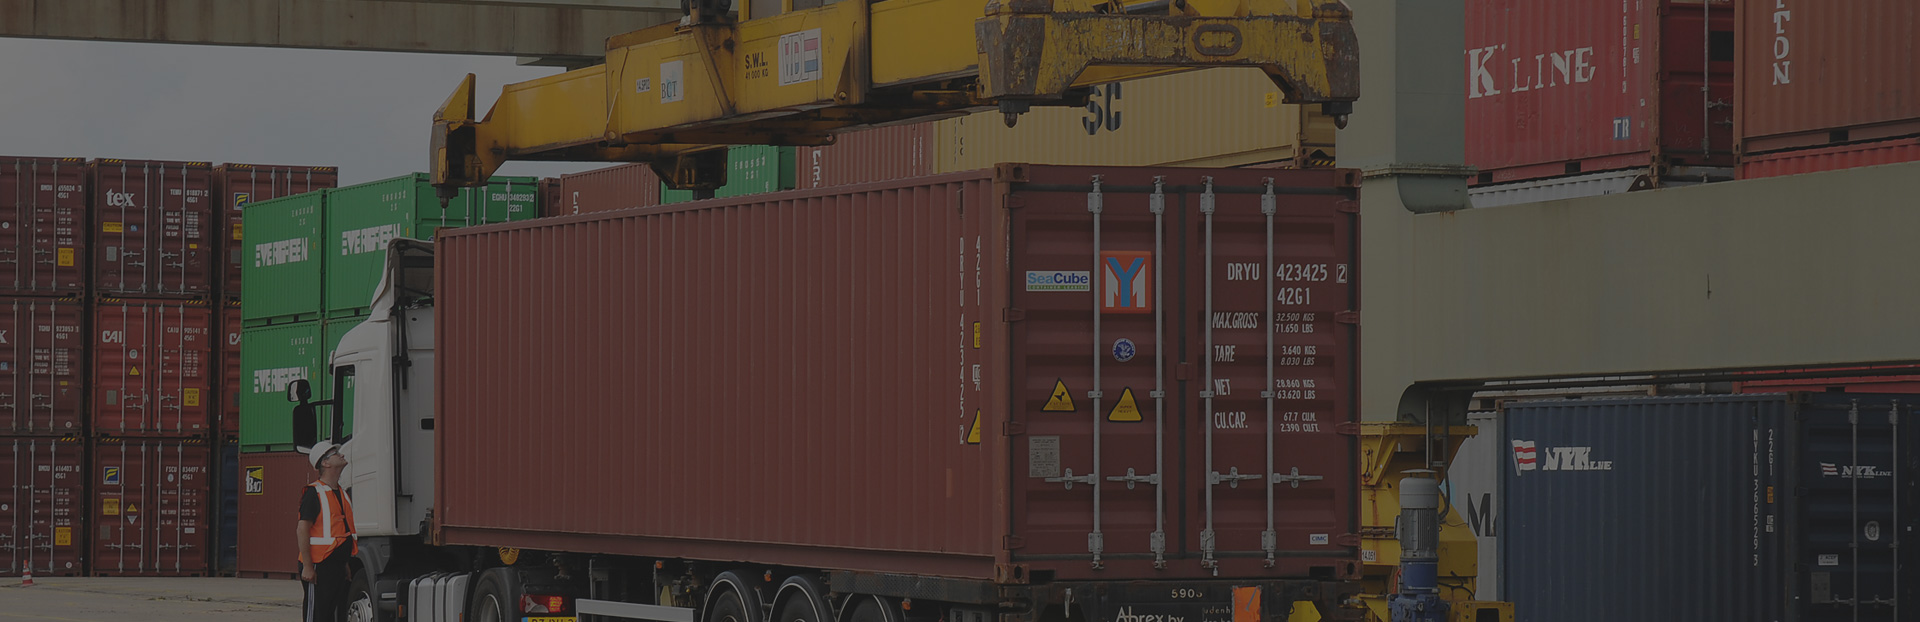 Abrex container transport